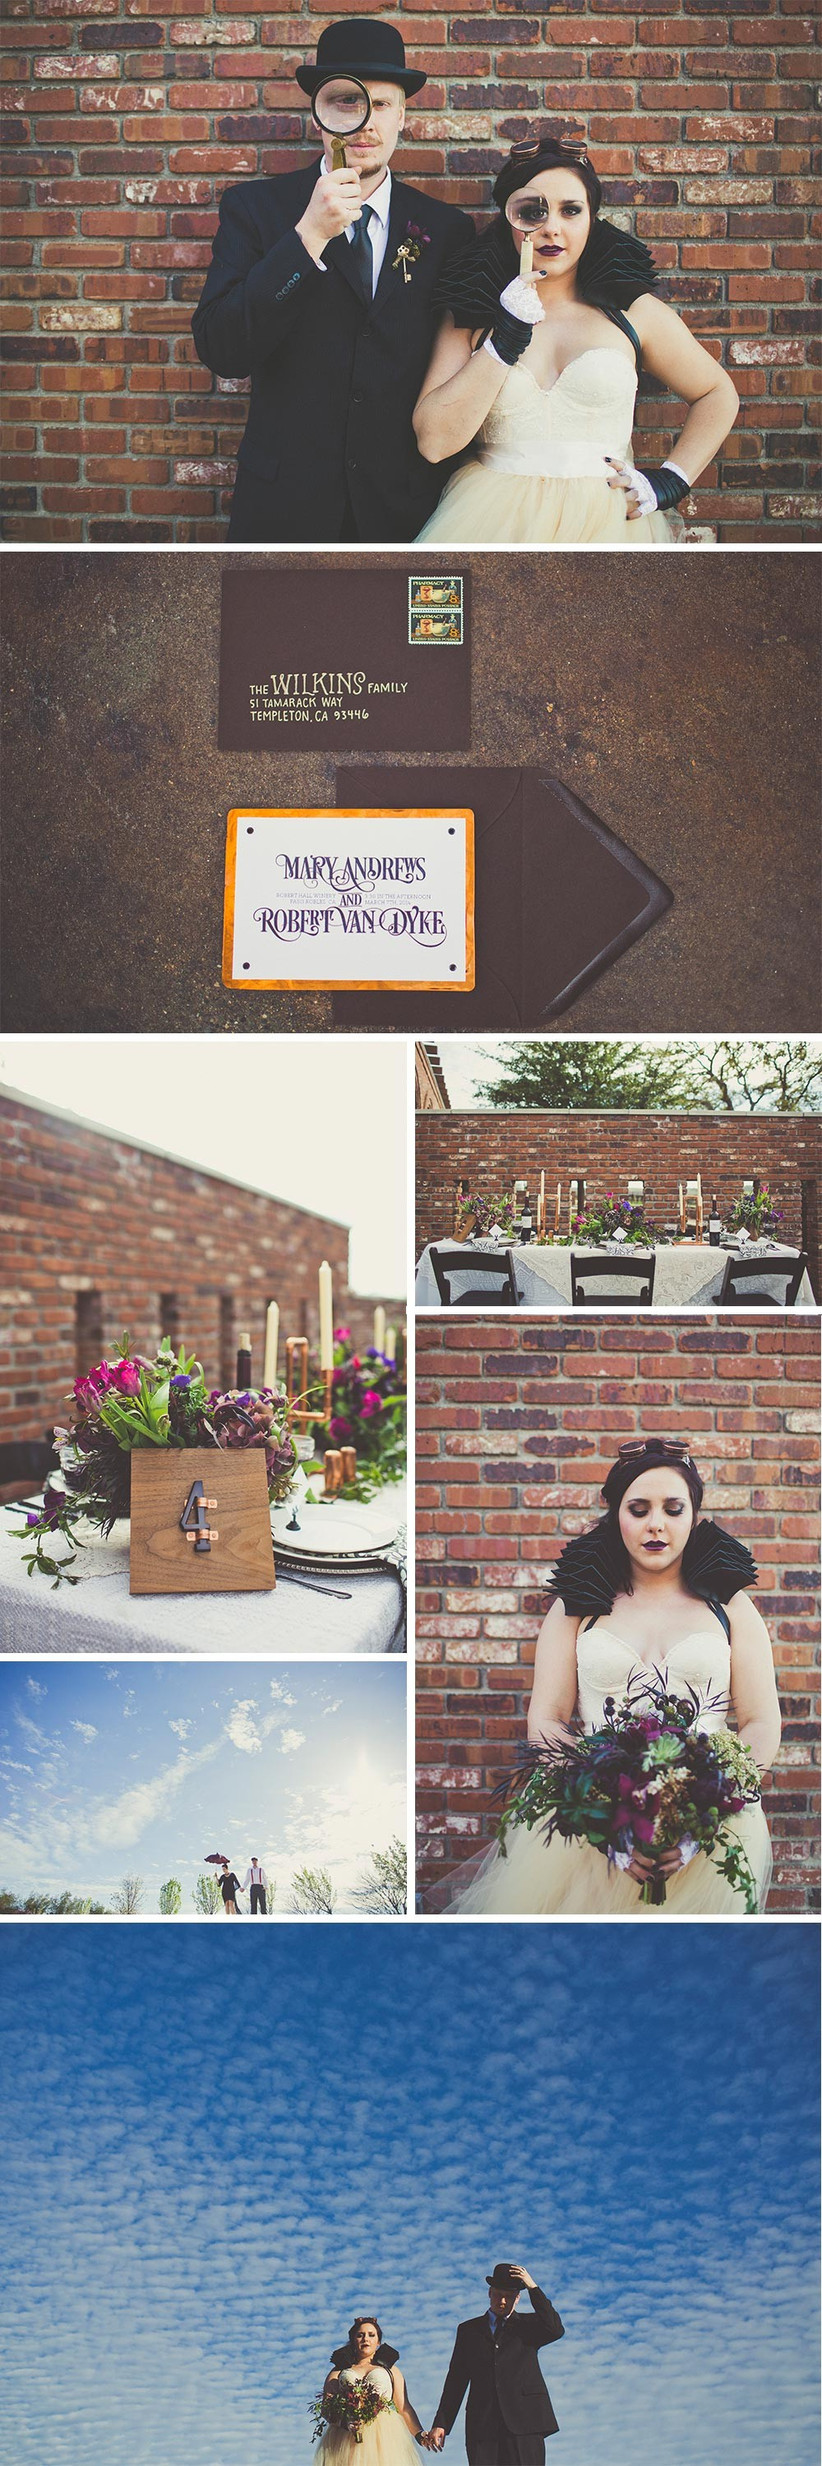 wedding-shoot-with-an-unusual-mary-poppins-theme